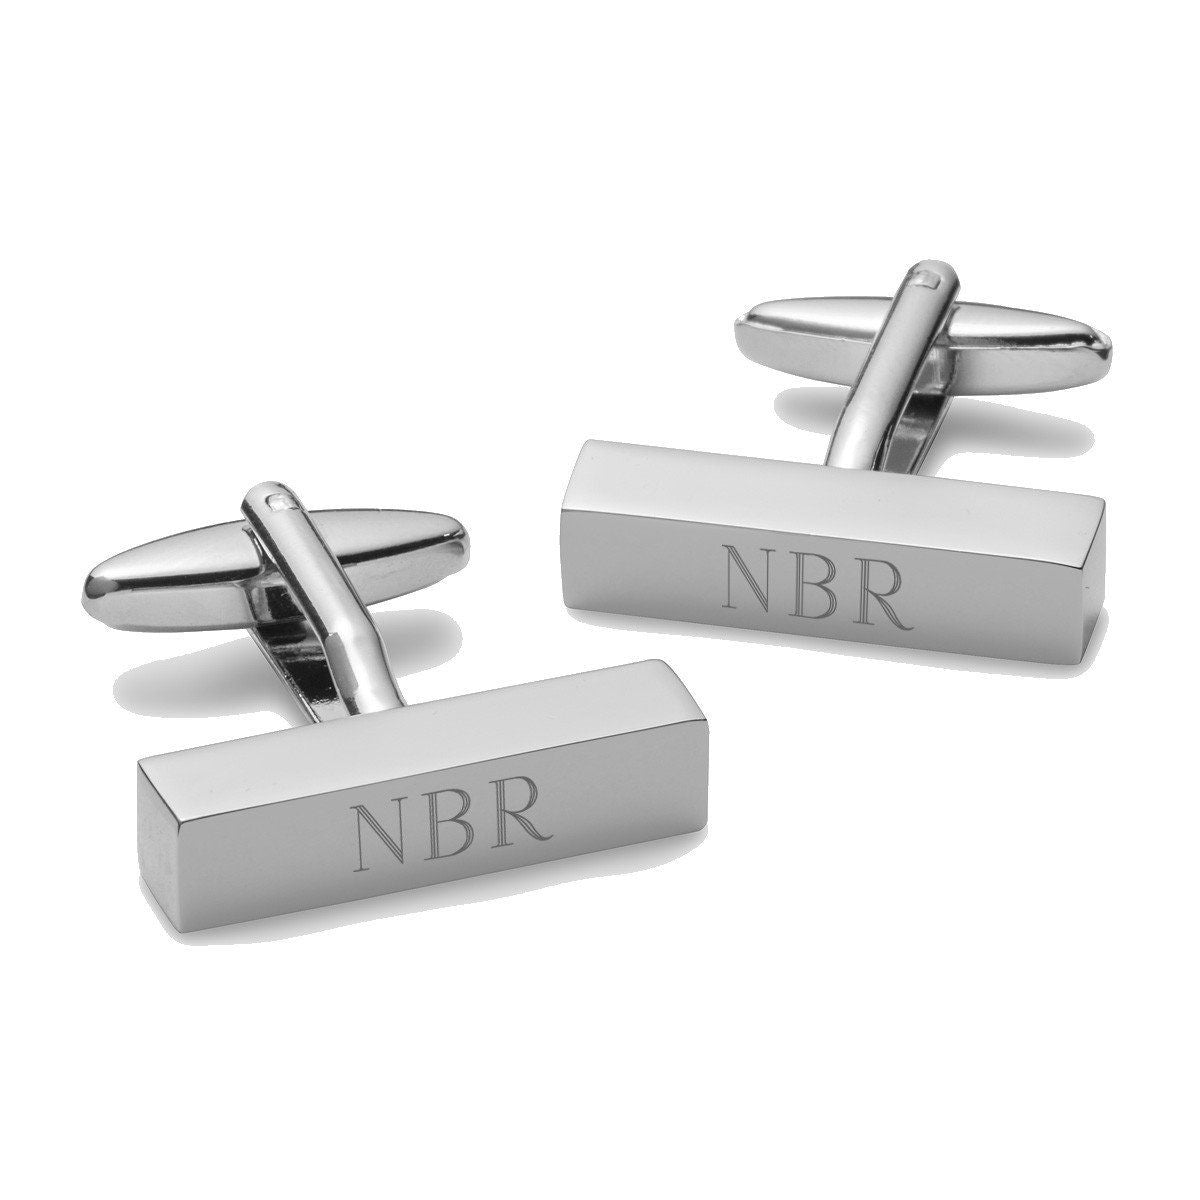 Personalized-Cufflink-Bars